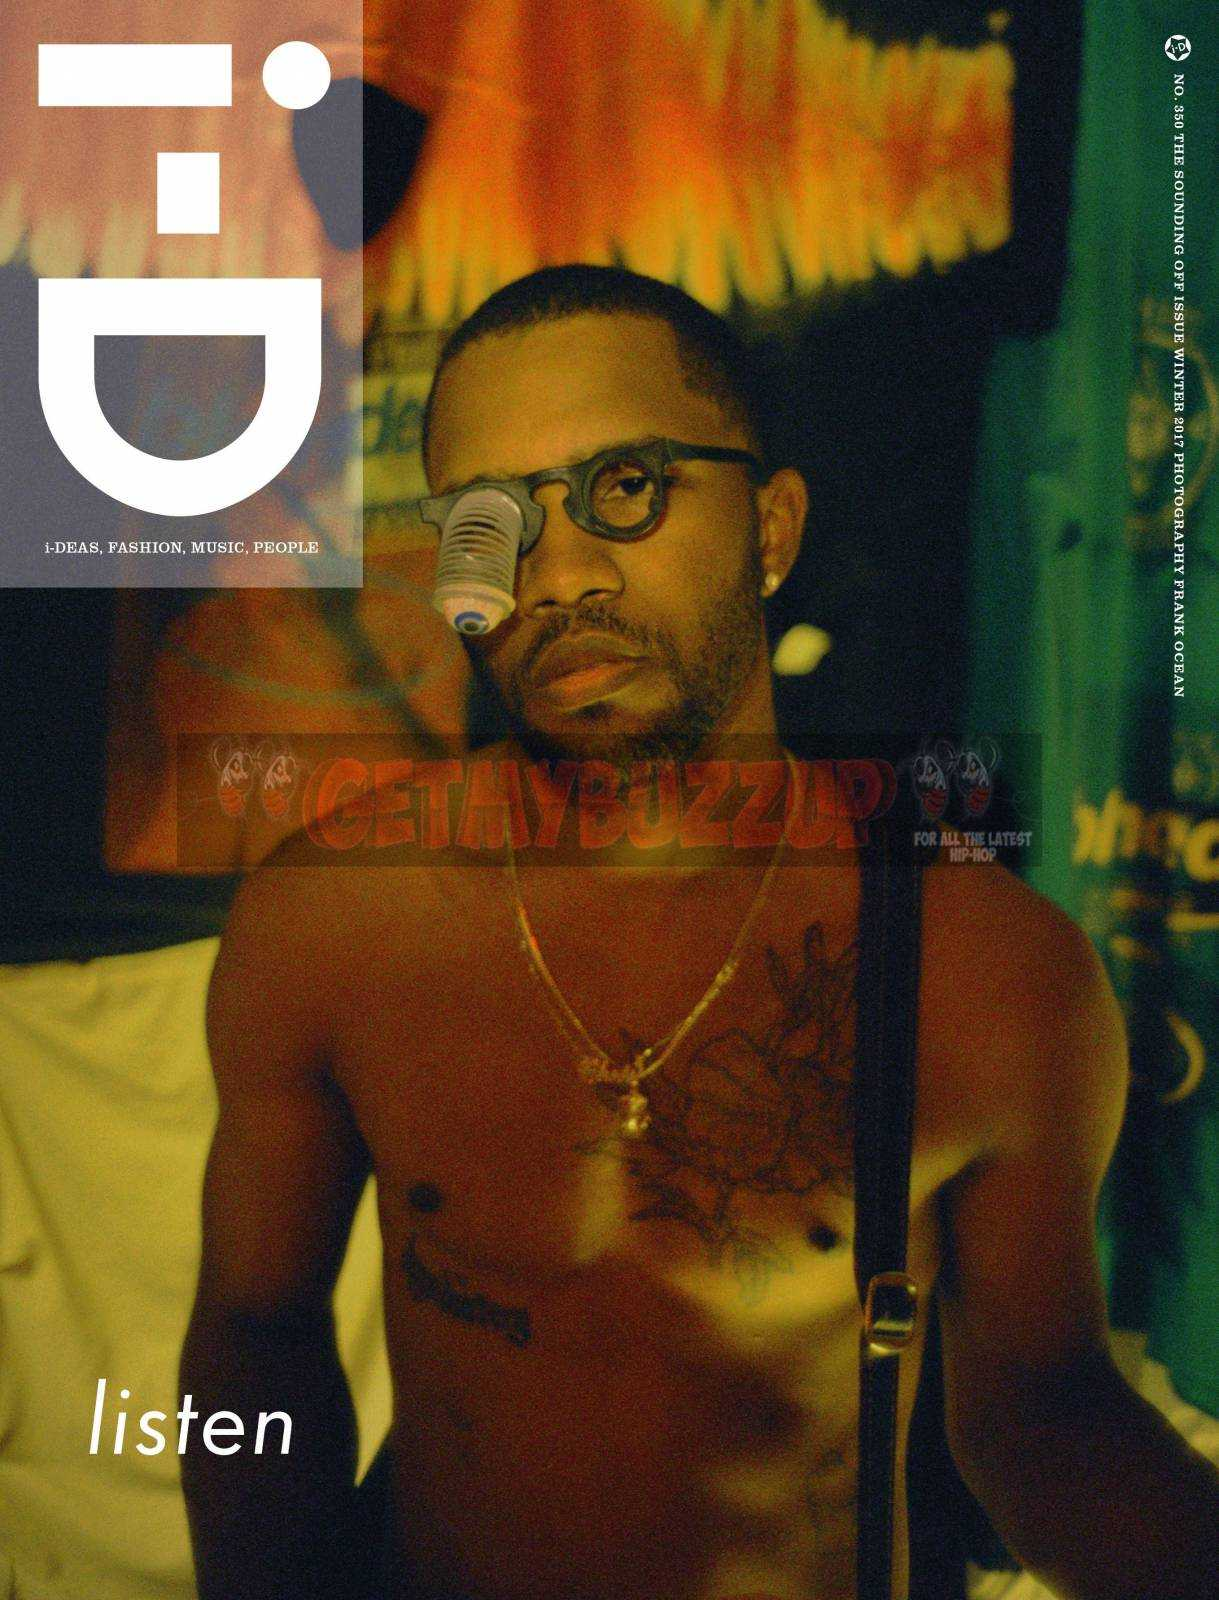 Frank Ocean Appears On 2nd Cover of i-D Magazine's Winter 2017 Issue